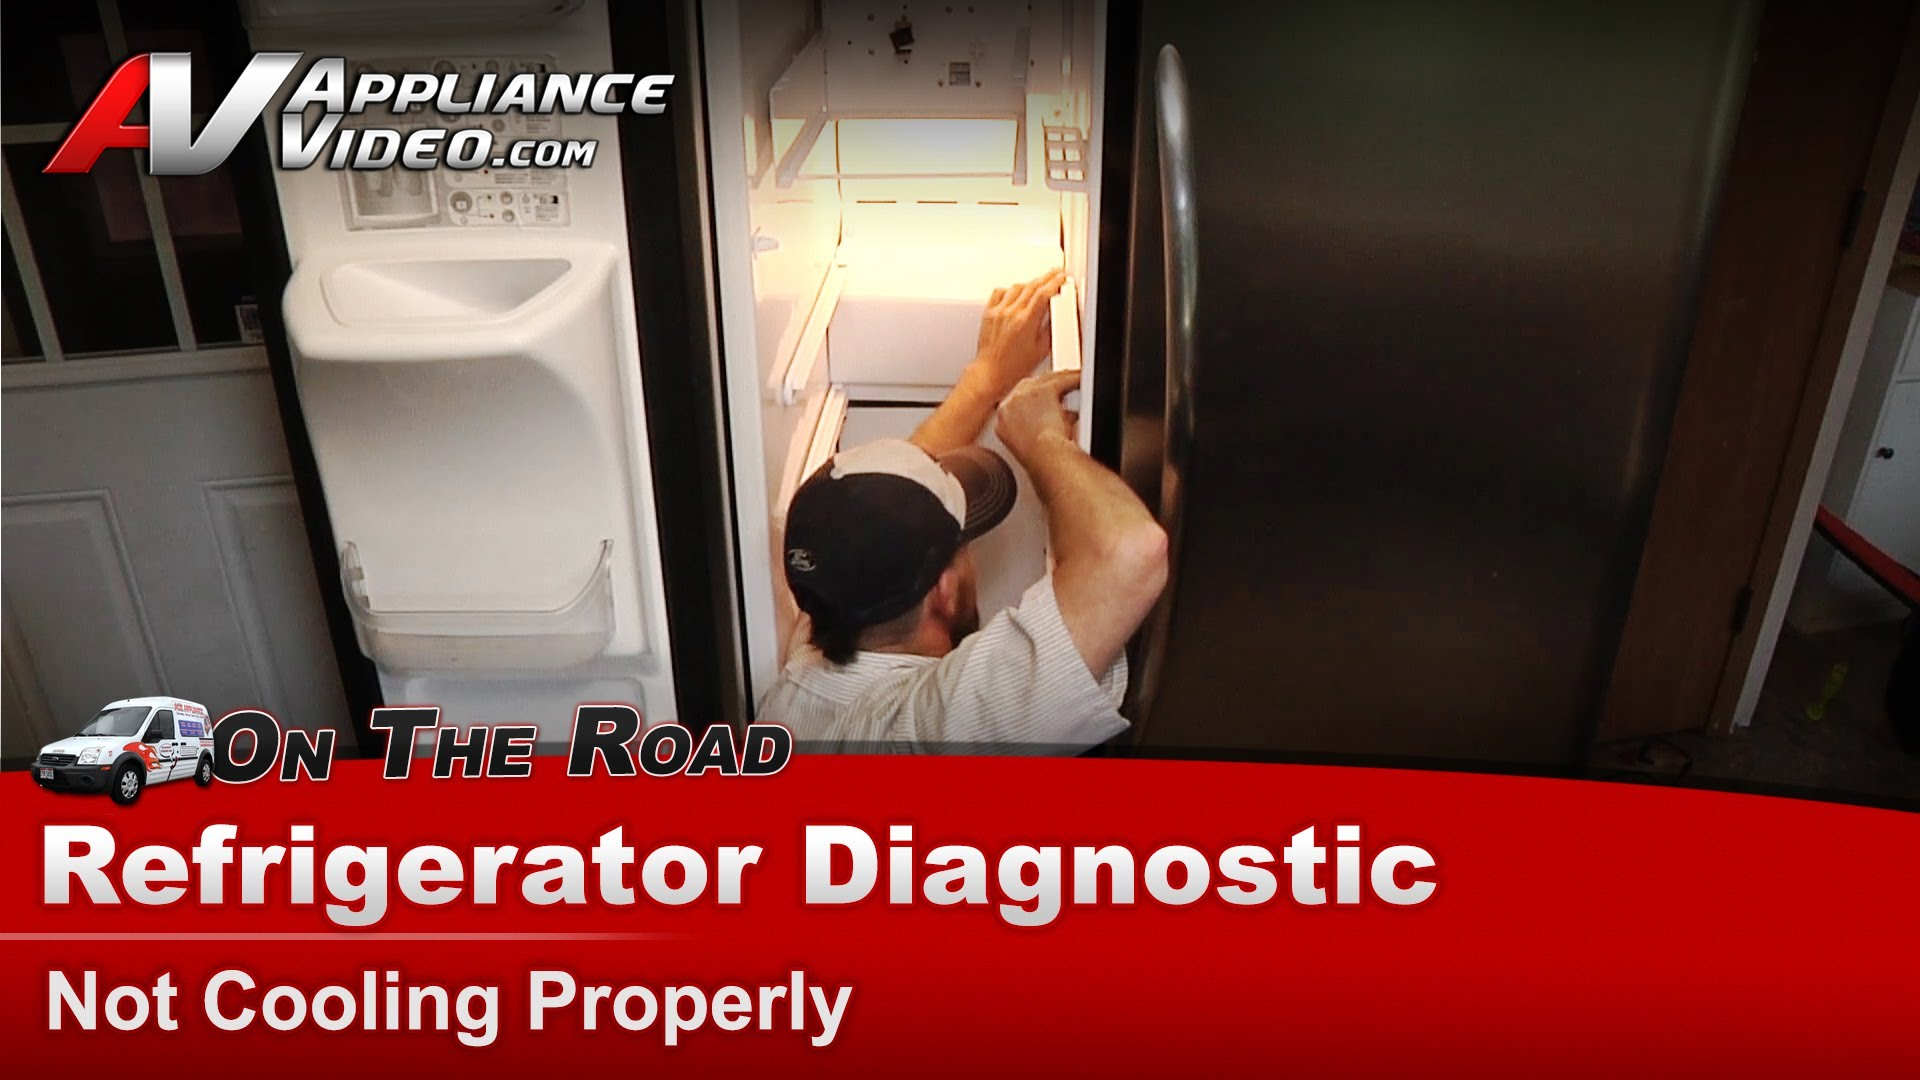 Electrolux Wall Oven Wiring Diagram Frigidaire Frs26lf8cs1 Refrigerator Diagnostic Not